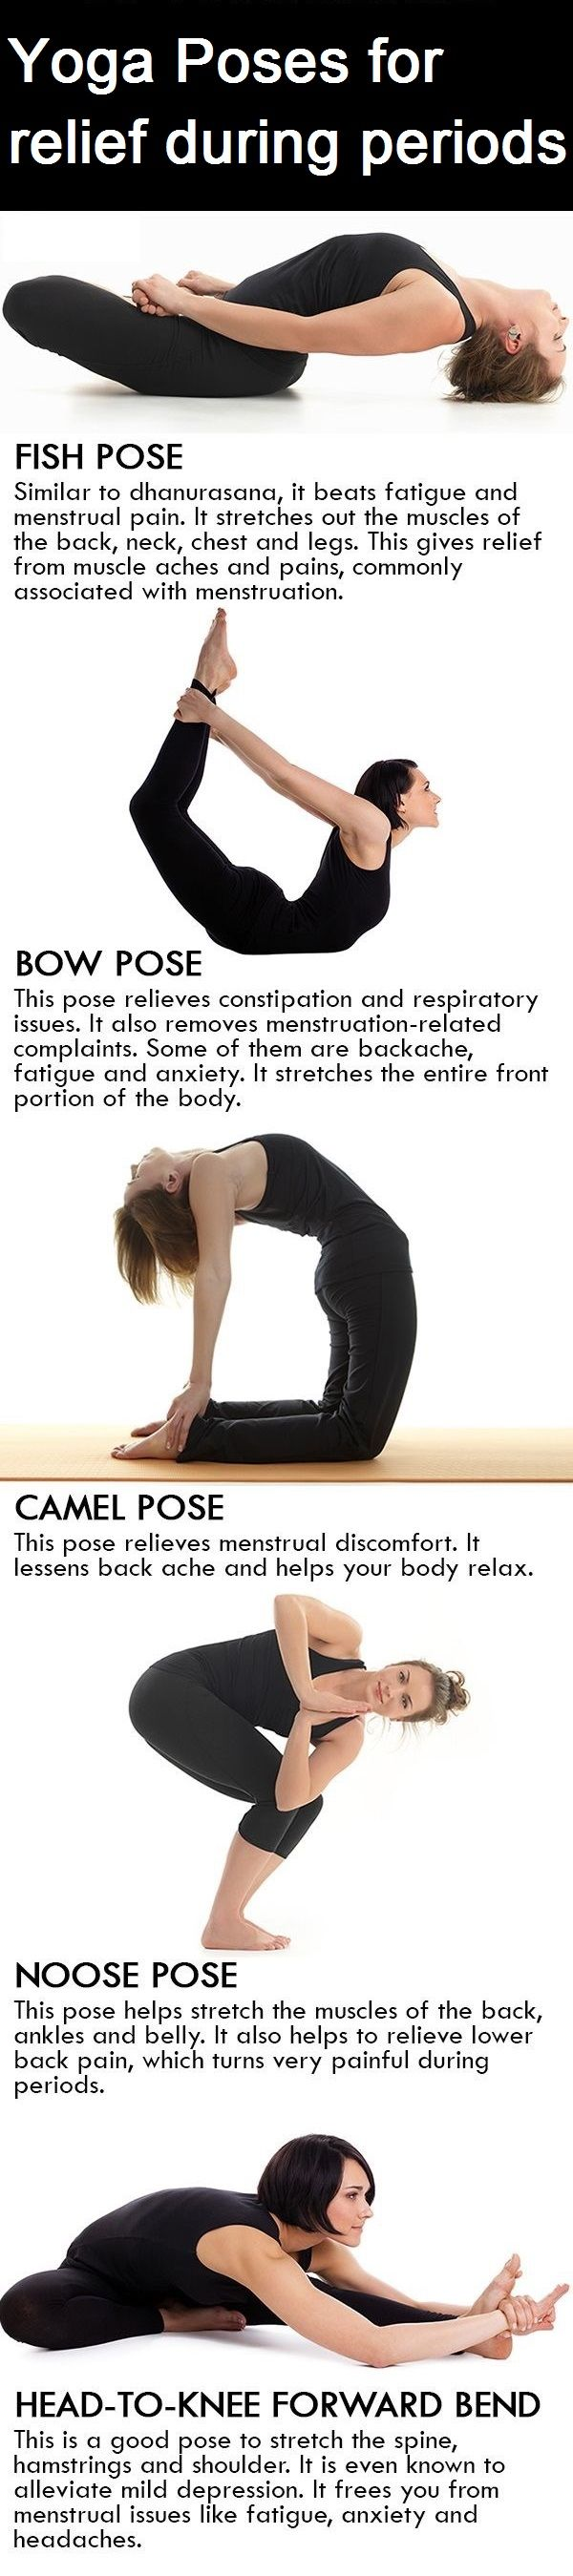 Yoga Poses To Reduce The Pain During Your Periods